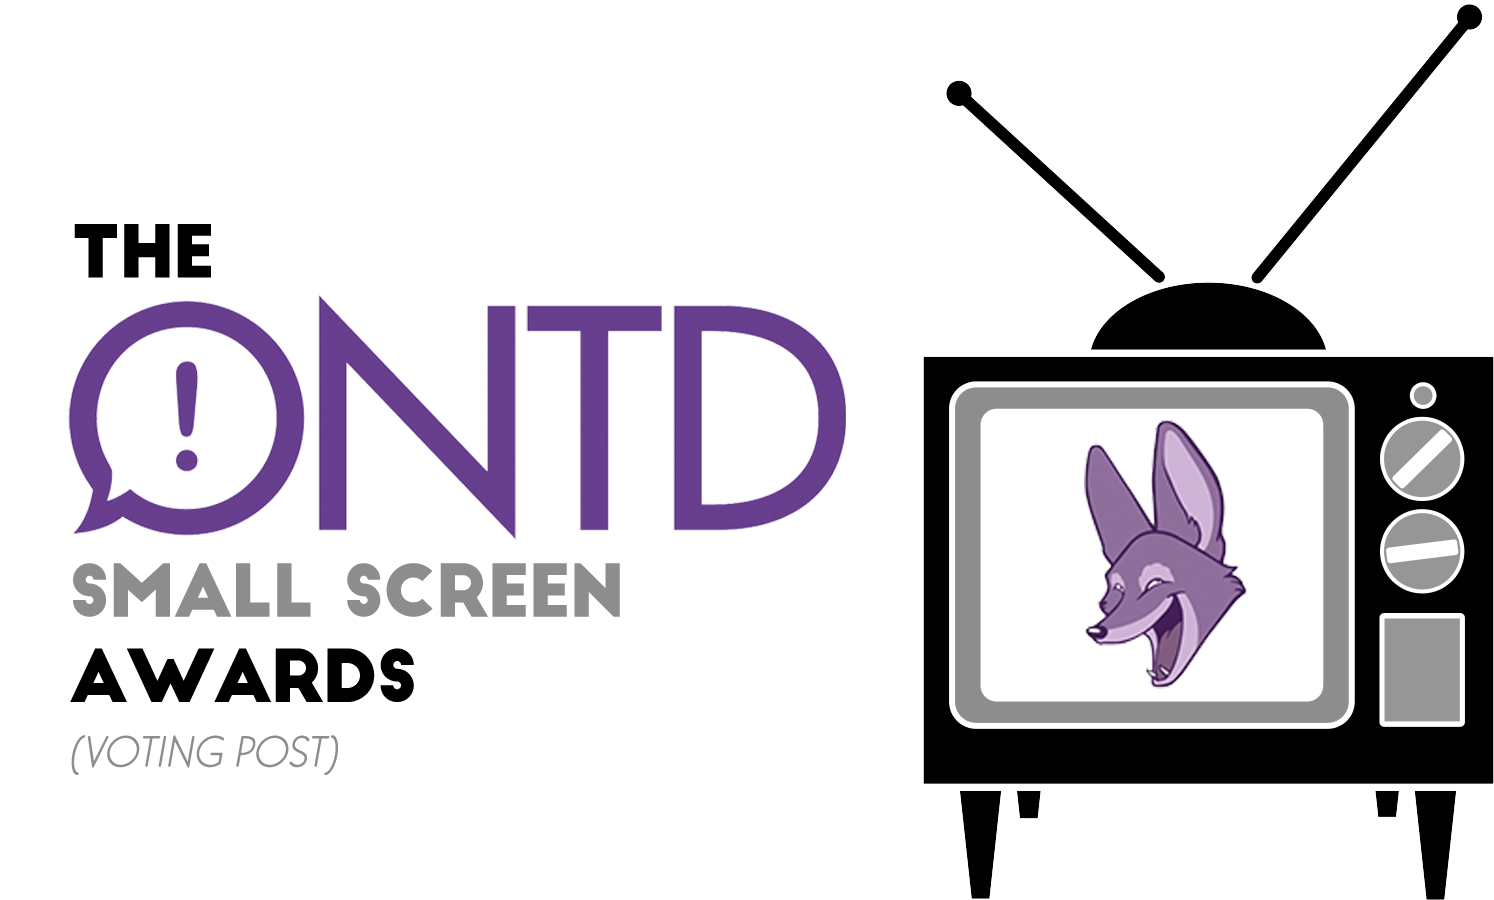 small screen awards voting.png